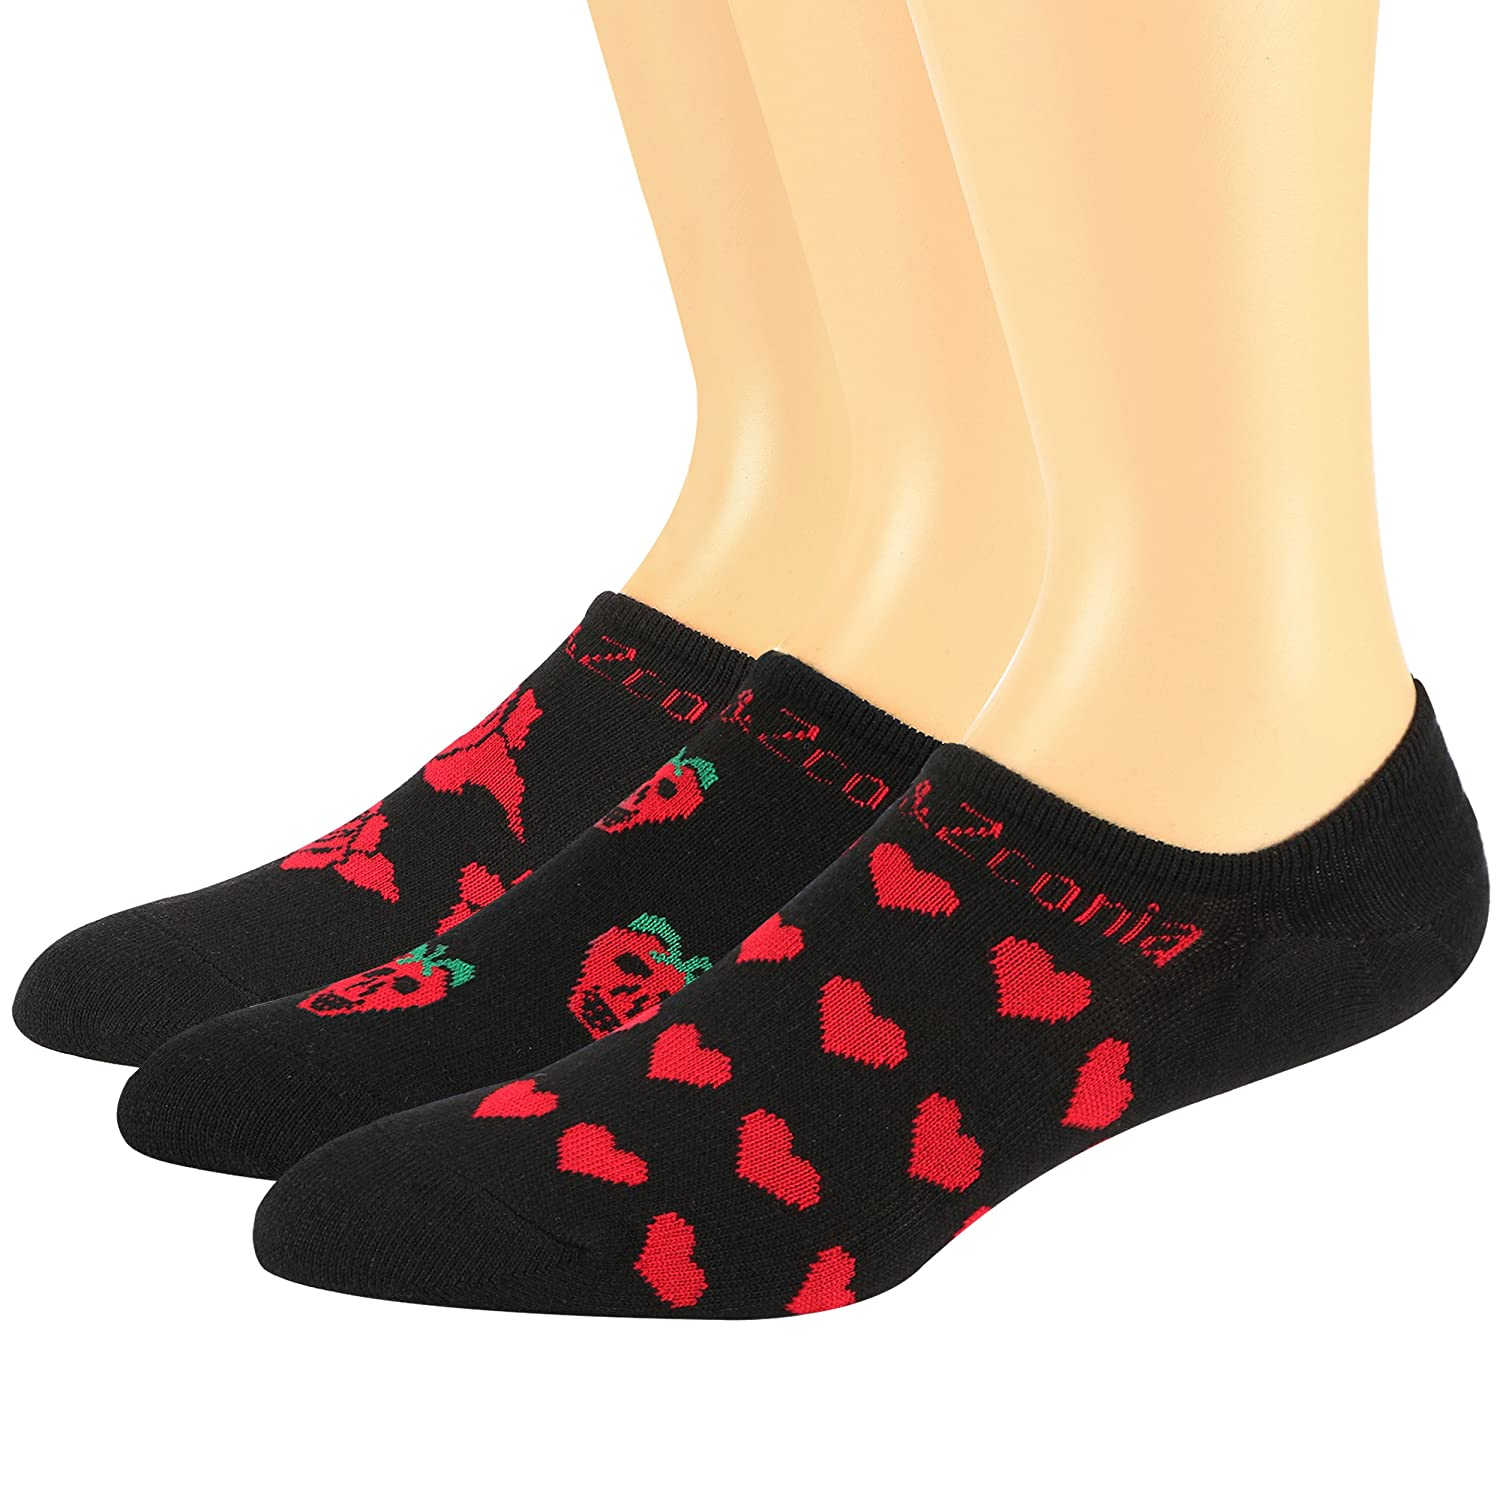 OnceMeet Womens No Show Low Cut Sweat Absorbing Non-Slip Socks Hearts//Roses//Skulls Patterns Valentines 6Pack